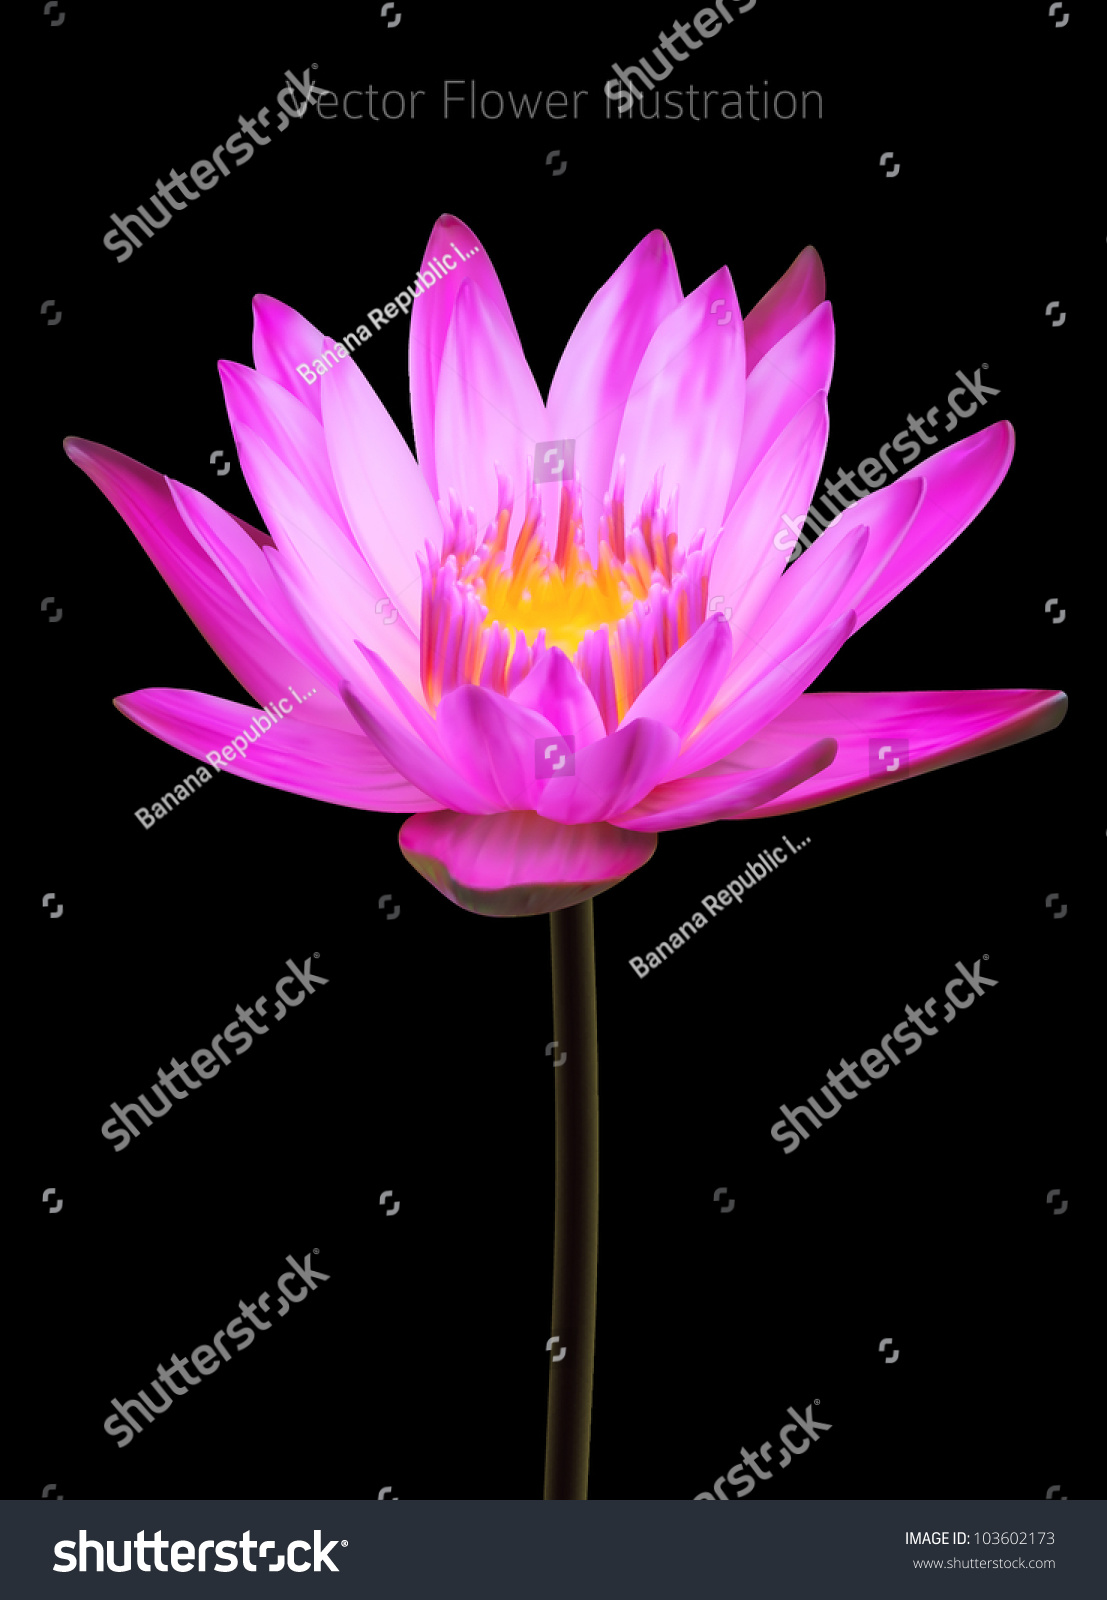 lotus in water plant diagram 5 pin relay wiring fuel pump lily flower vector illustration wild